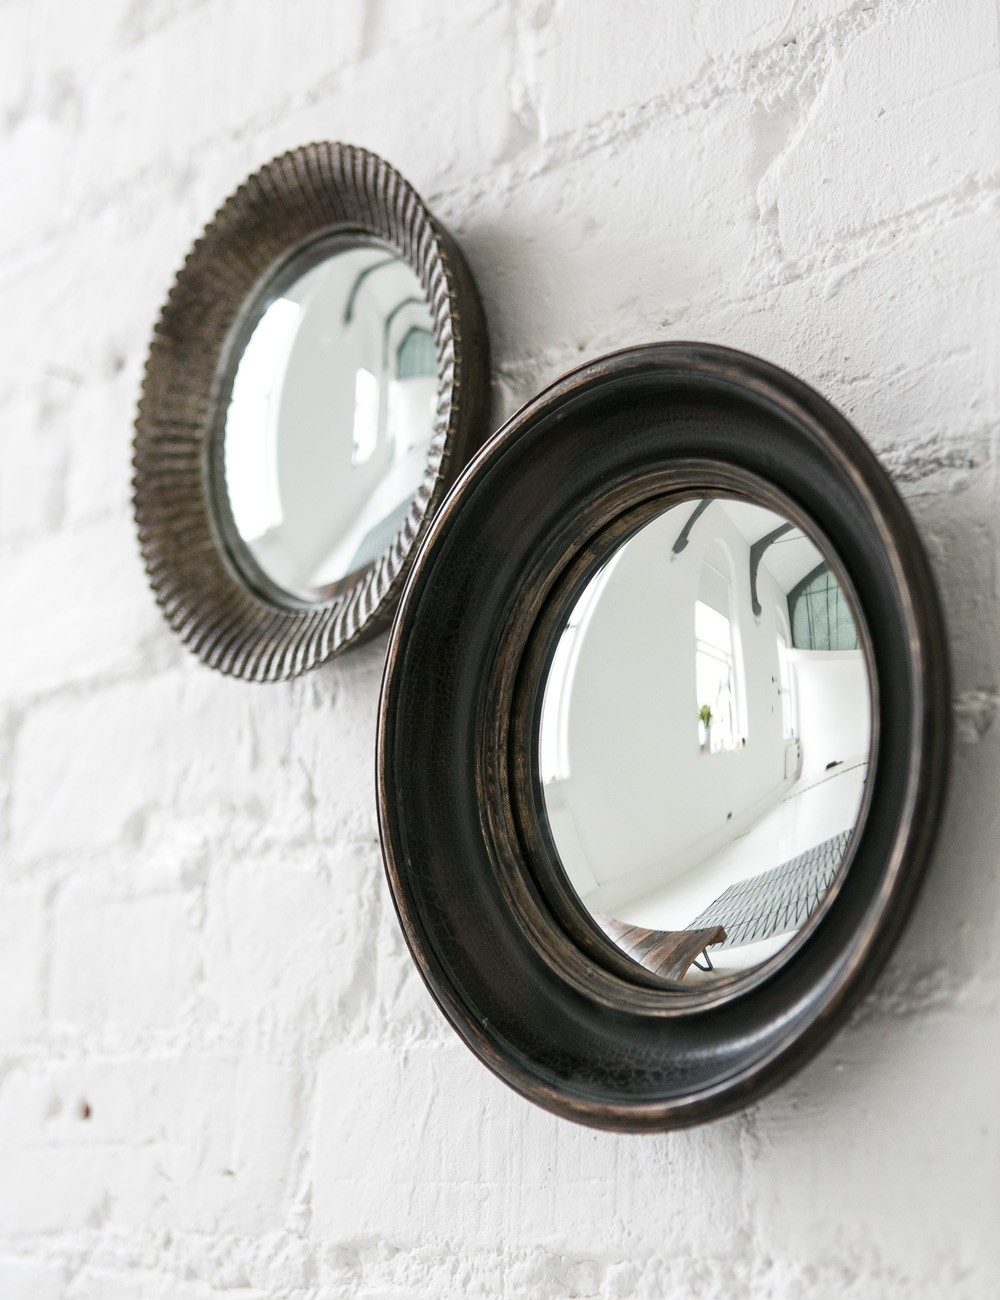 Big Wall Mirrors Ireland Large Venetian Mirror Can Be Wall Hung Intended For Decorative Convex Mirrors For Sale (View 14 of 15)